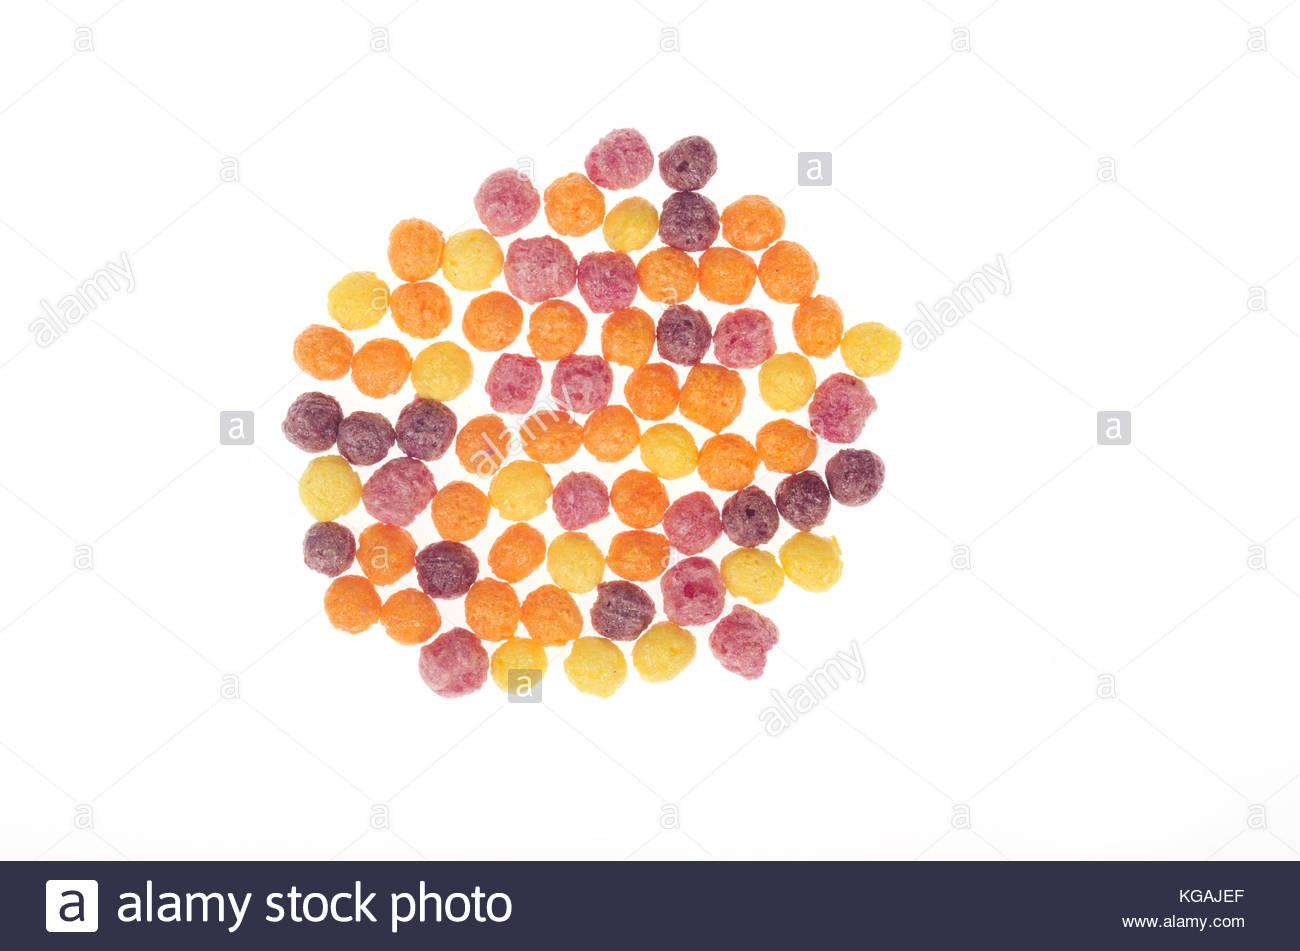 Trix cereal from General Mills on white background Stock Photo 1300x951